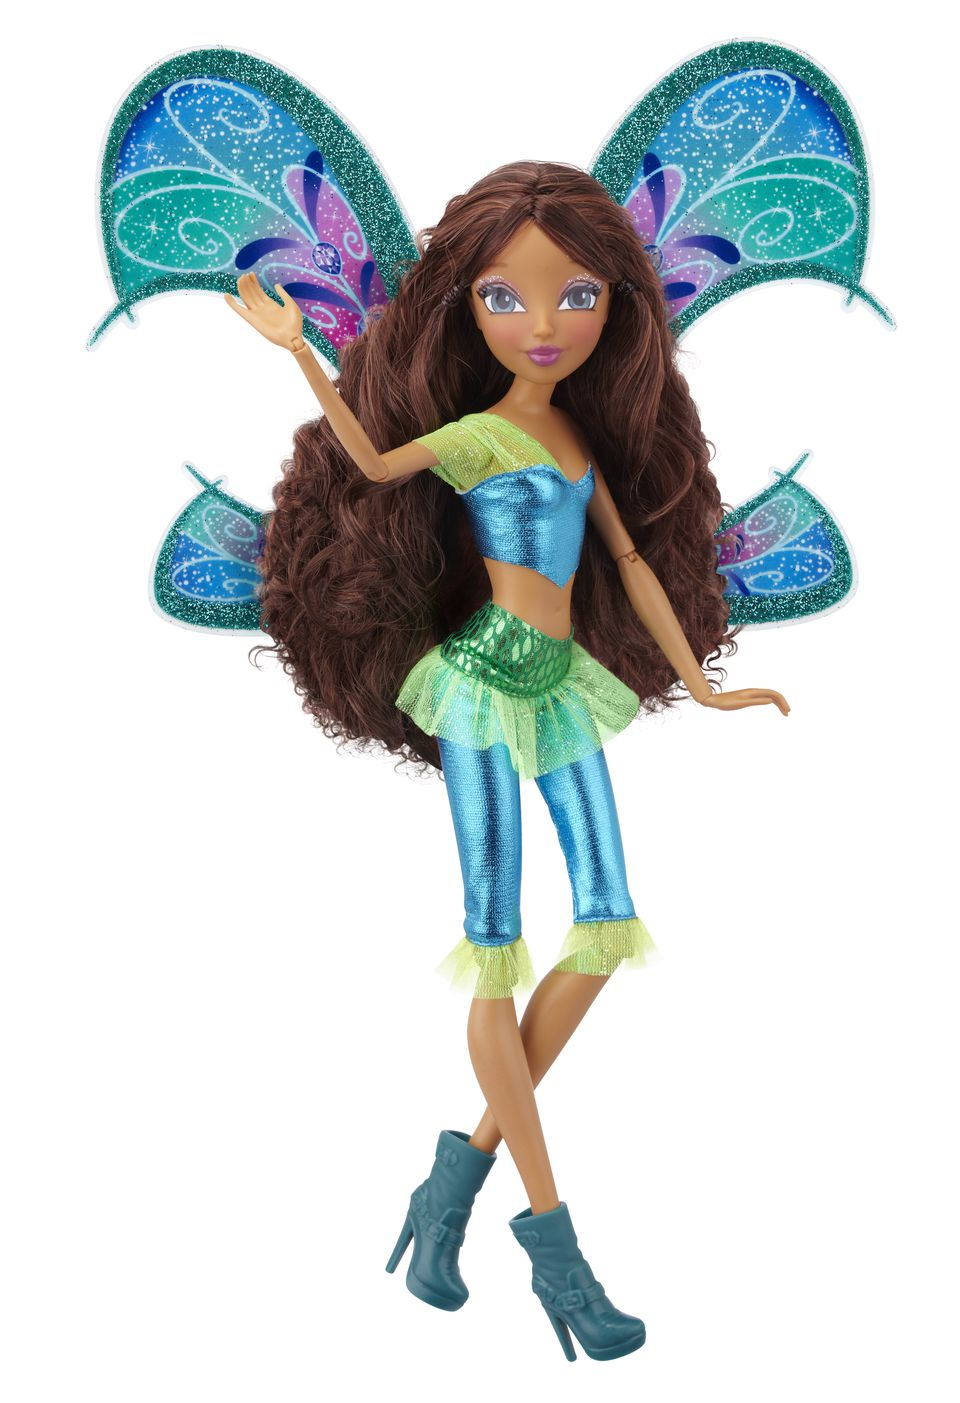 Winx Club Pictures Videos And Dolls